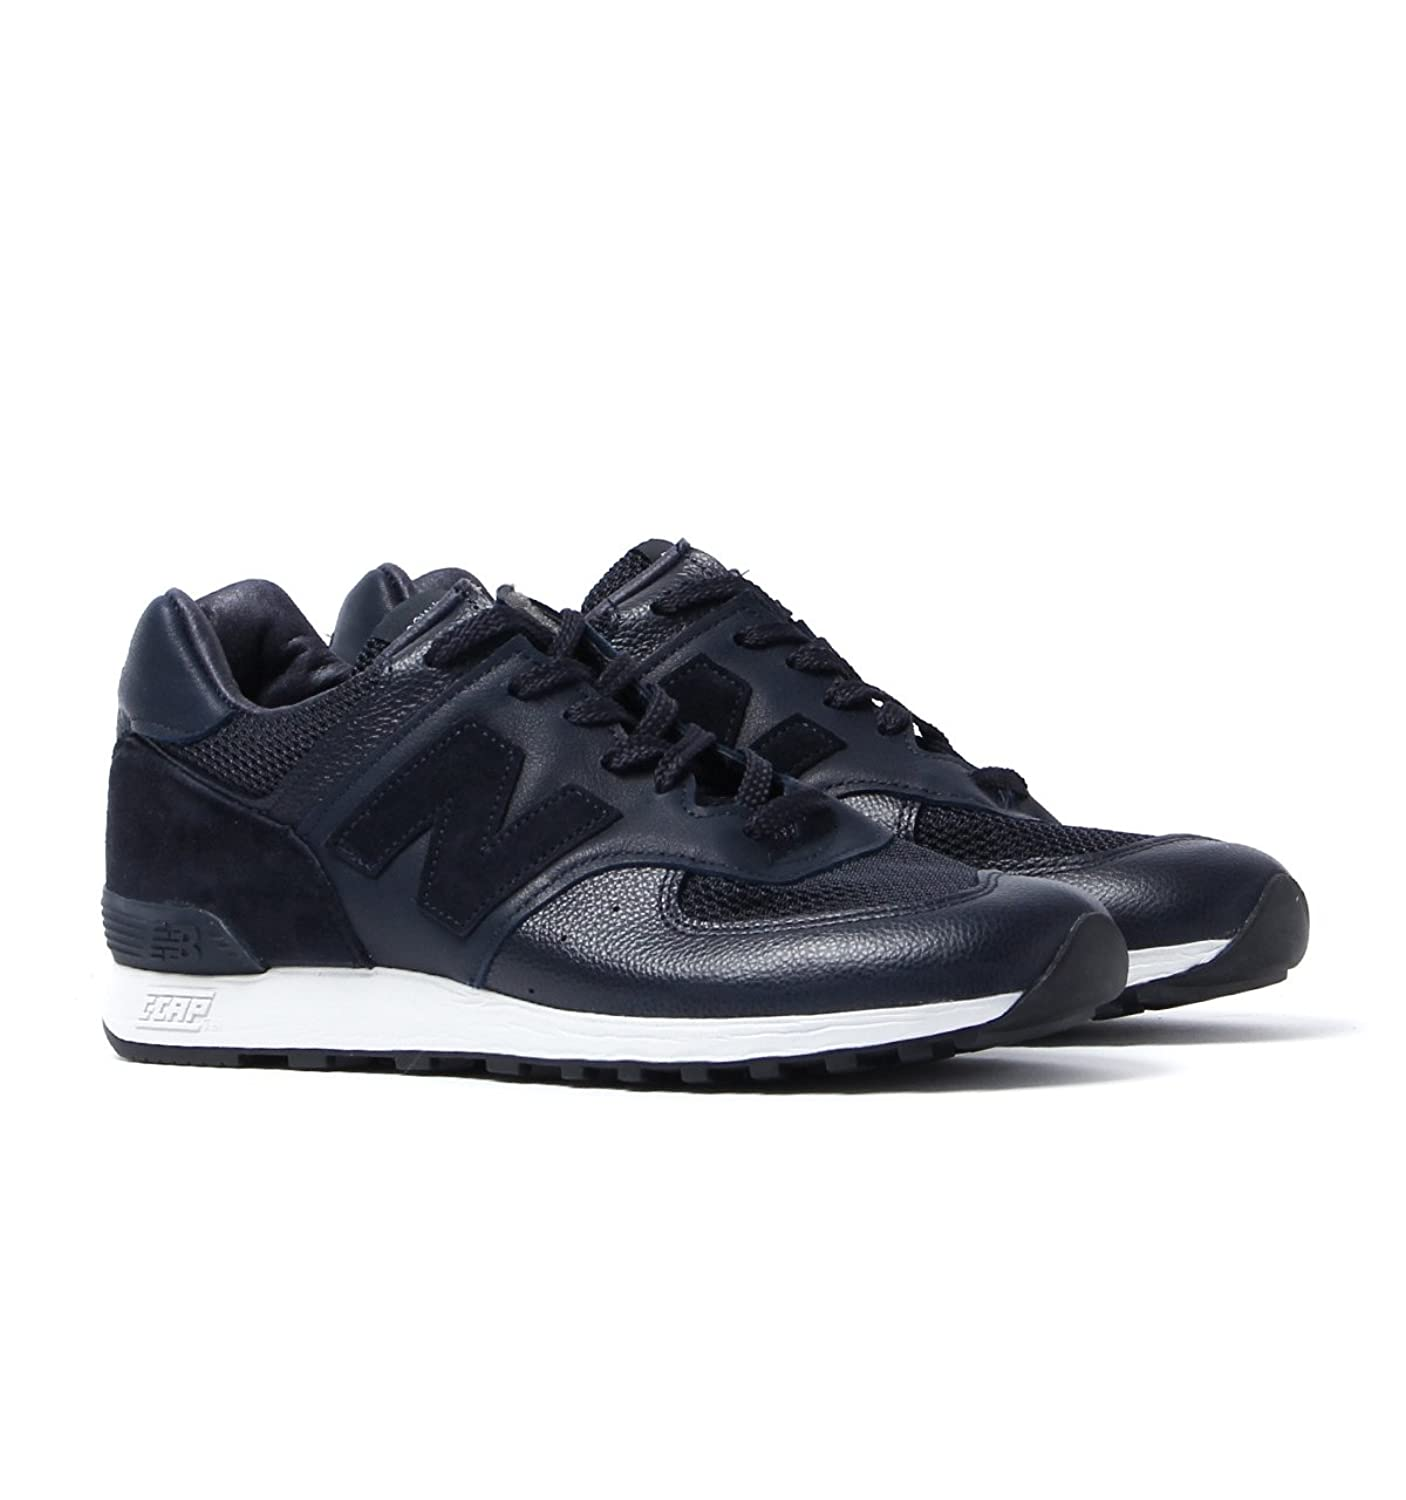 New Balance Made In England Deep Navy Leather Trainers